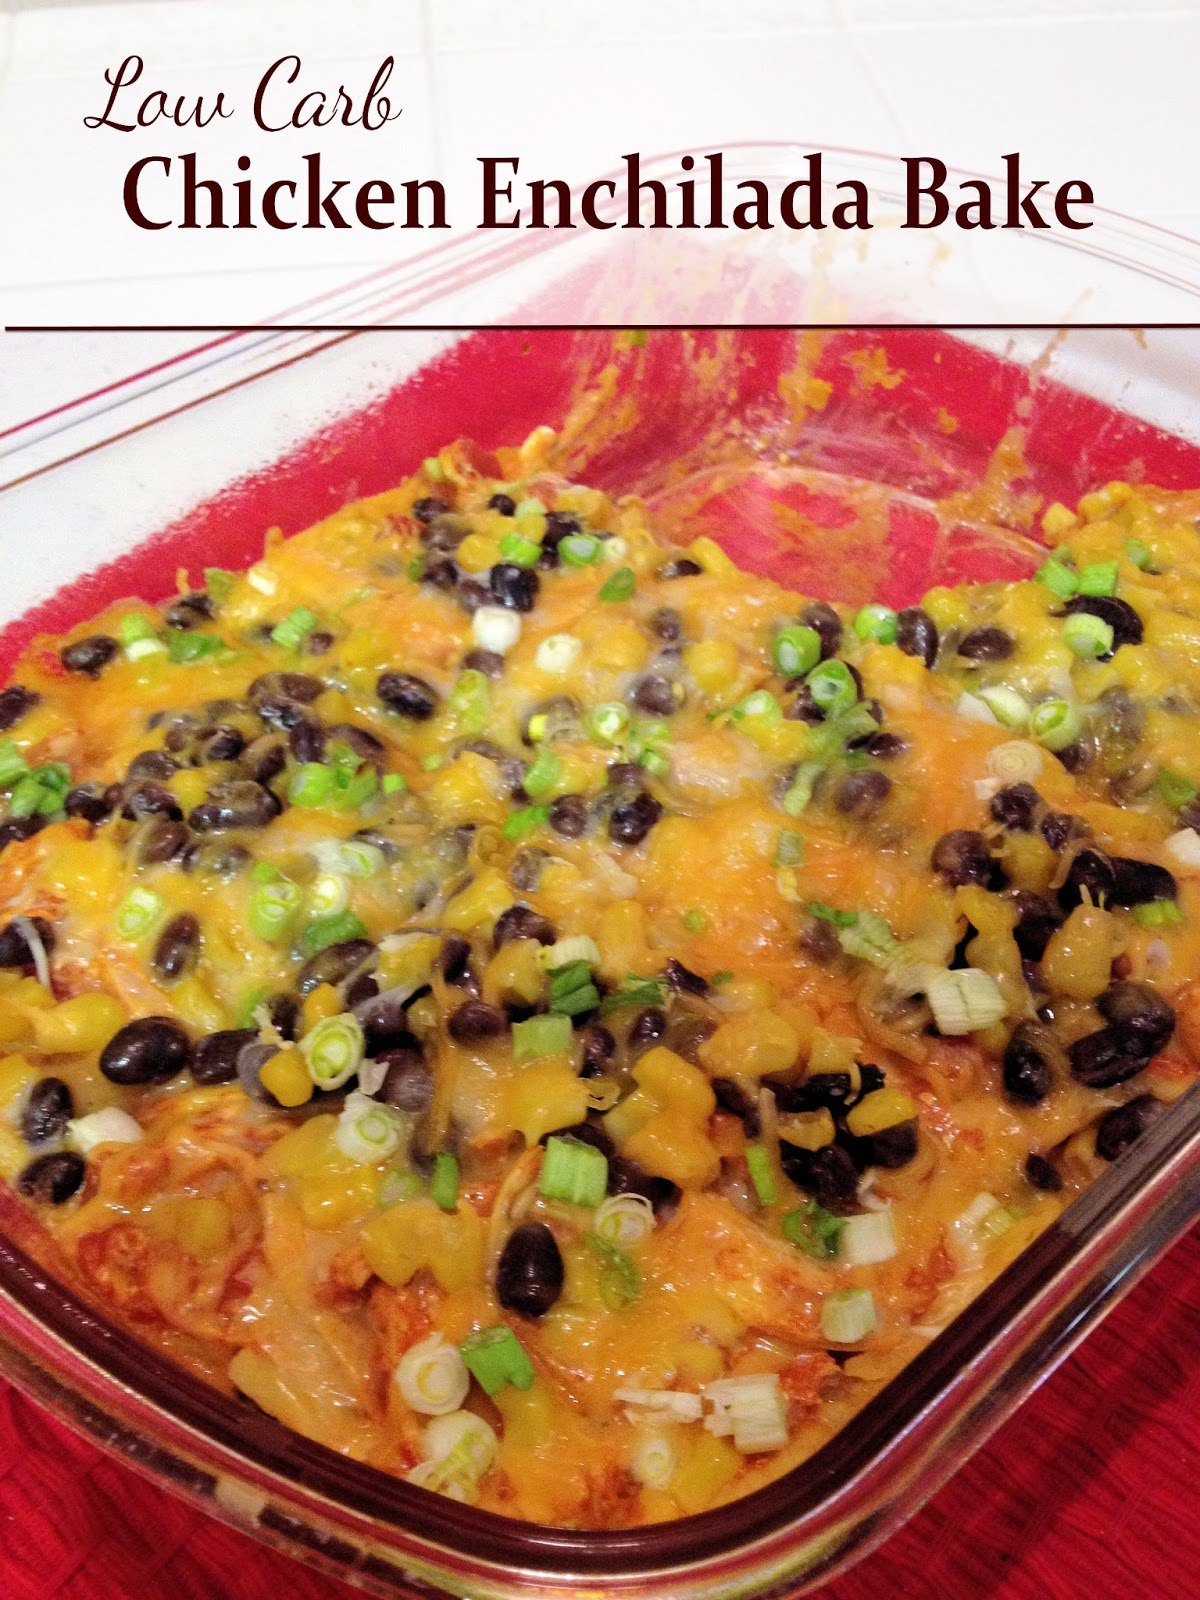 Dee Does Weight Watchers: Low Carb Chicken Enchilada Bake